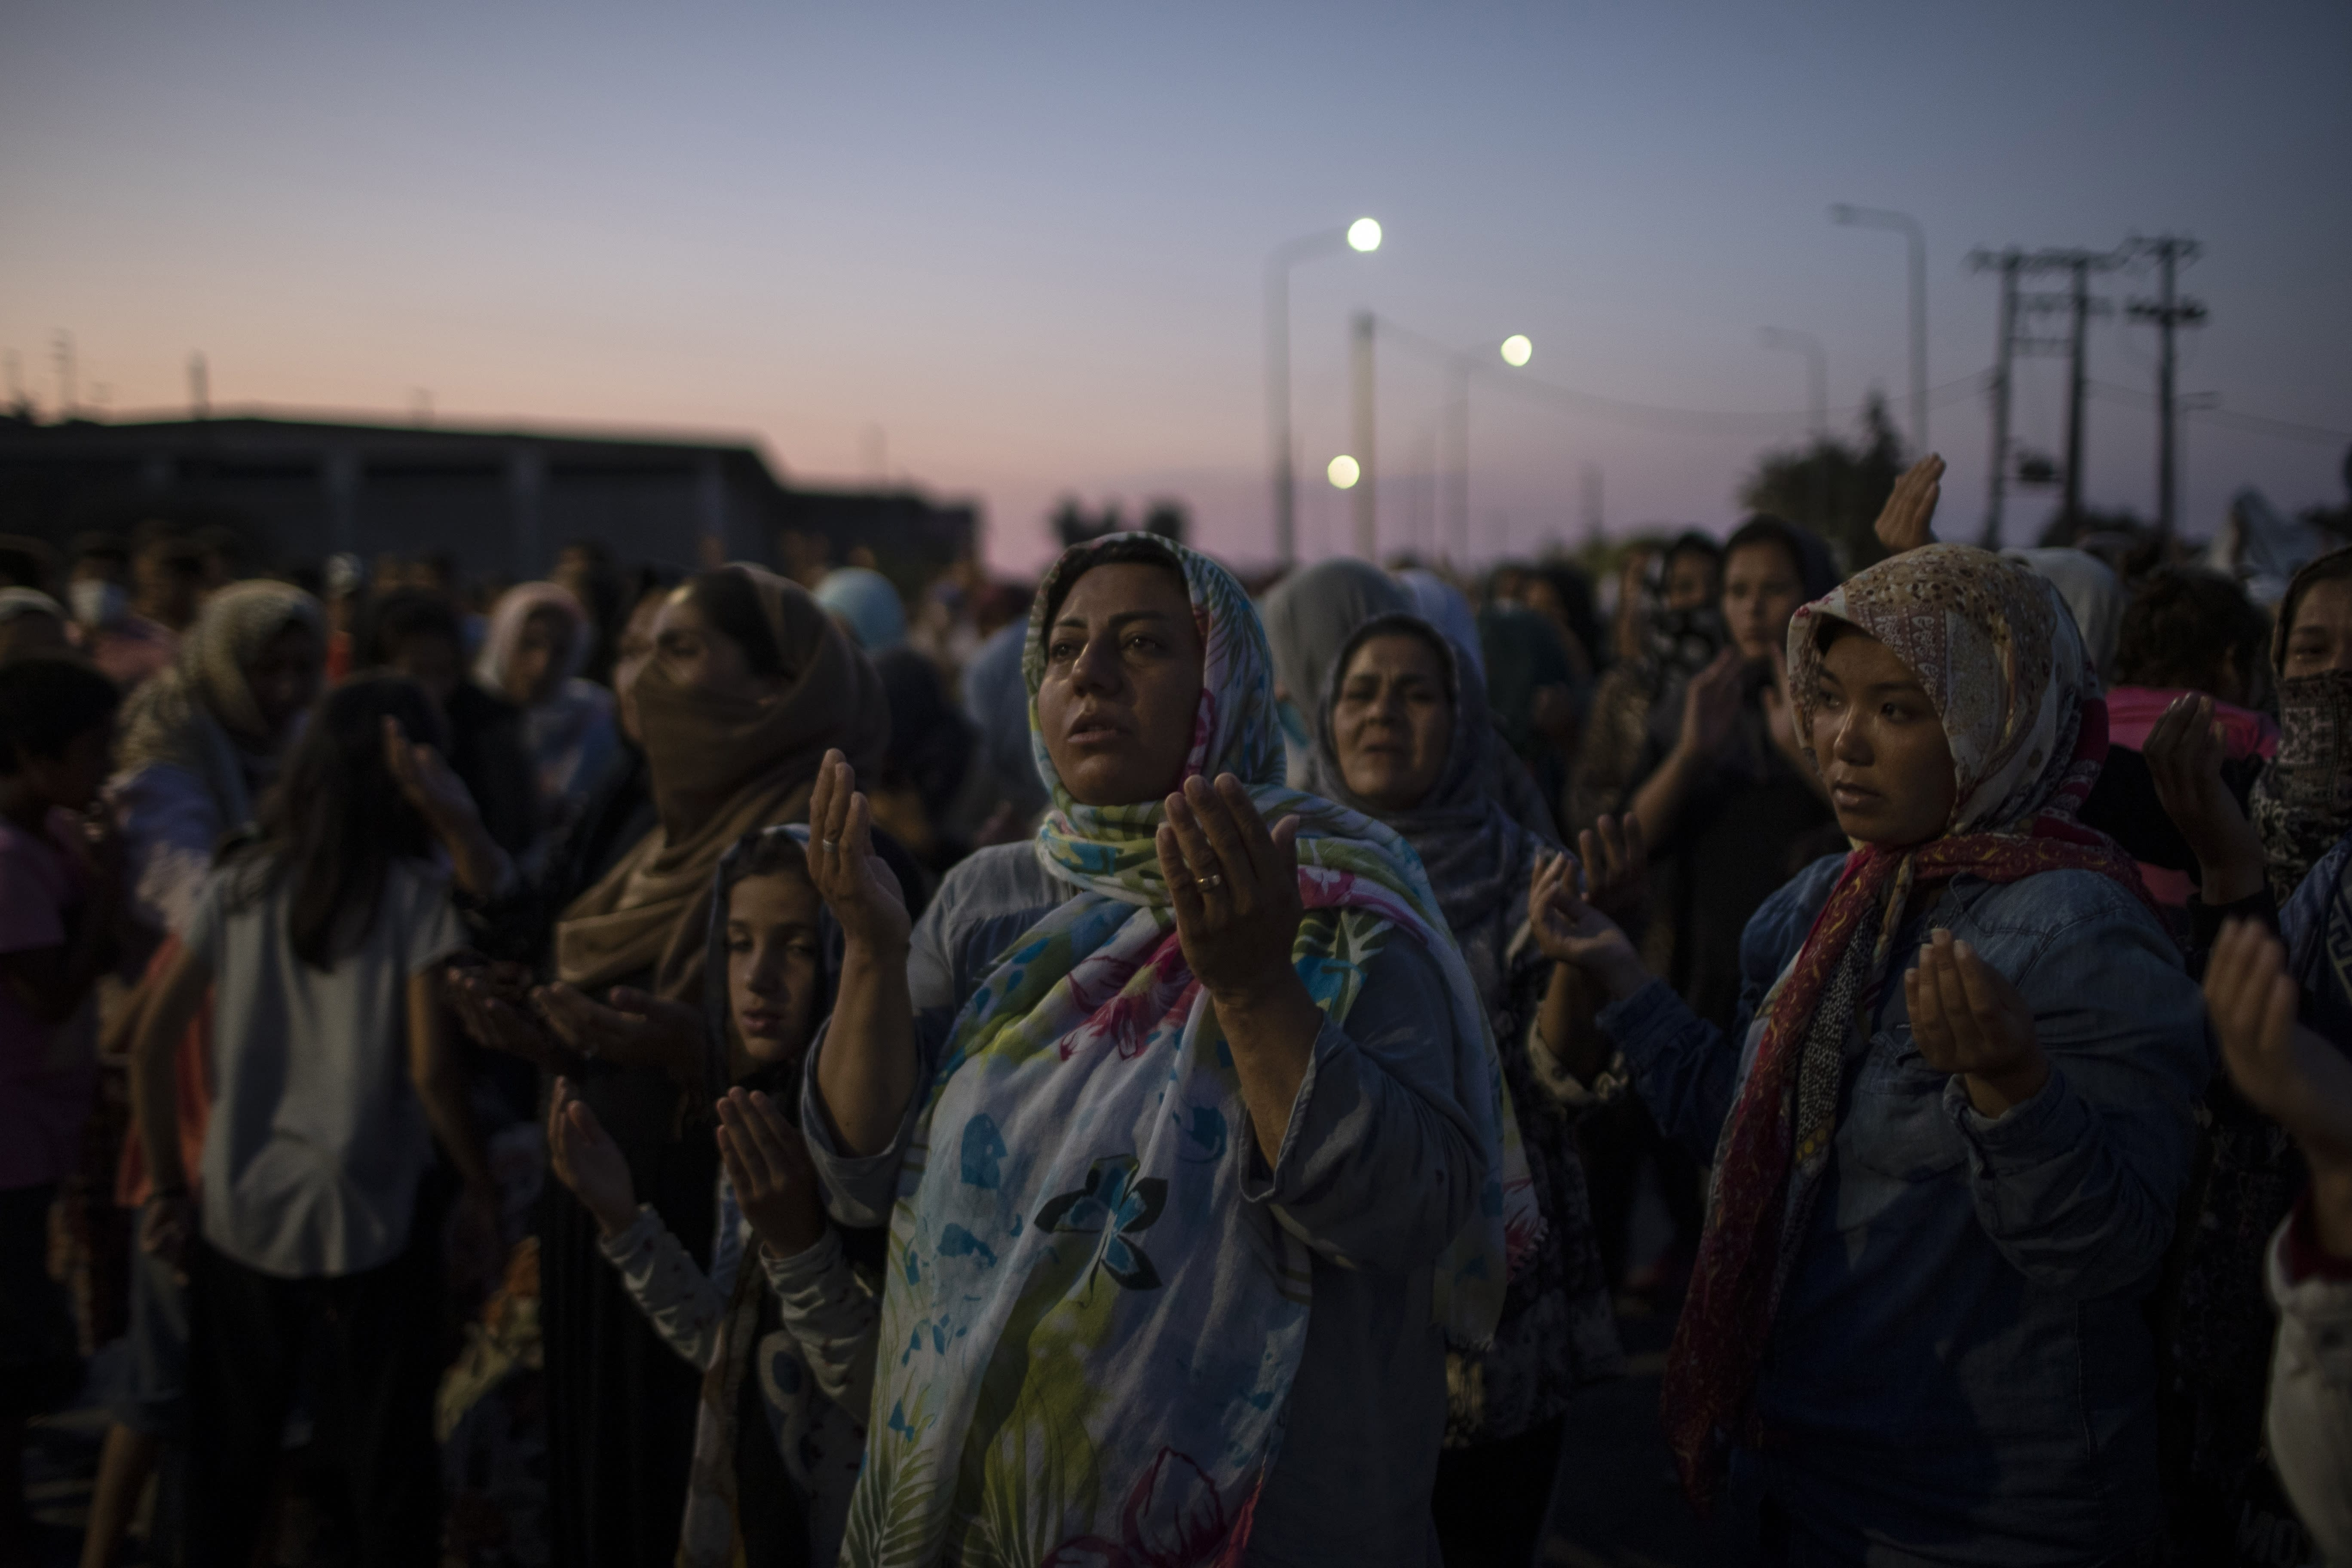 Migrants pray on the road near Mytilene town, on the northeastern island of Lesbos, Greece, Sunday, Sept. 13, 2020. Greece's prime minister Kyriakos Mitsotakis demanded Sunday that the European Union take a greater responsibility for managing migration into the bloc, as Greek authorities promised that 12,000 migrants and asylum-seekers left homeless after fire gutted an overcrowded camp would be moved shortly to a new tent city. (AP Photo/Petros Giannakouris)